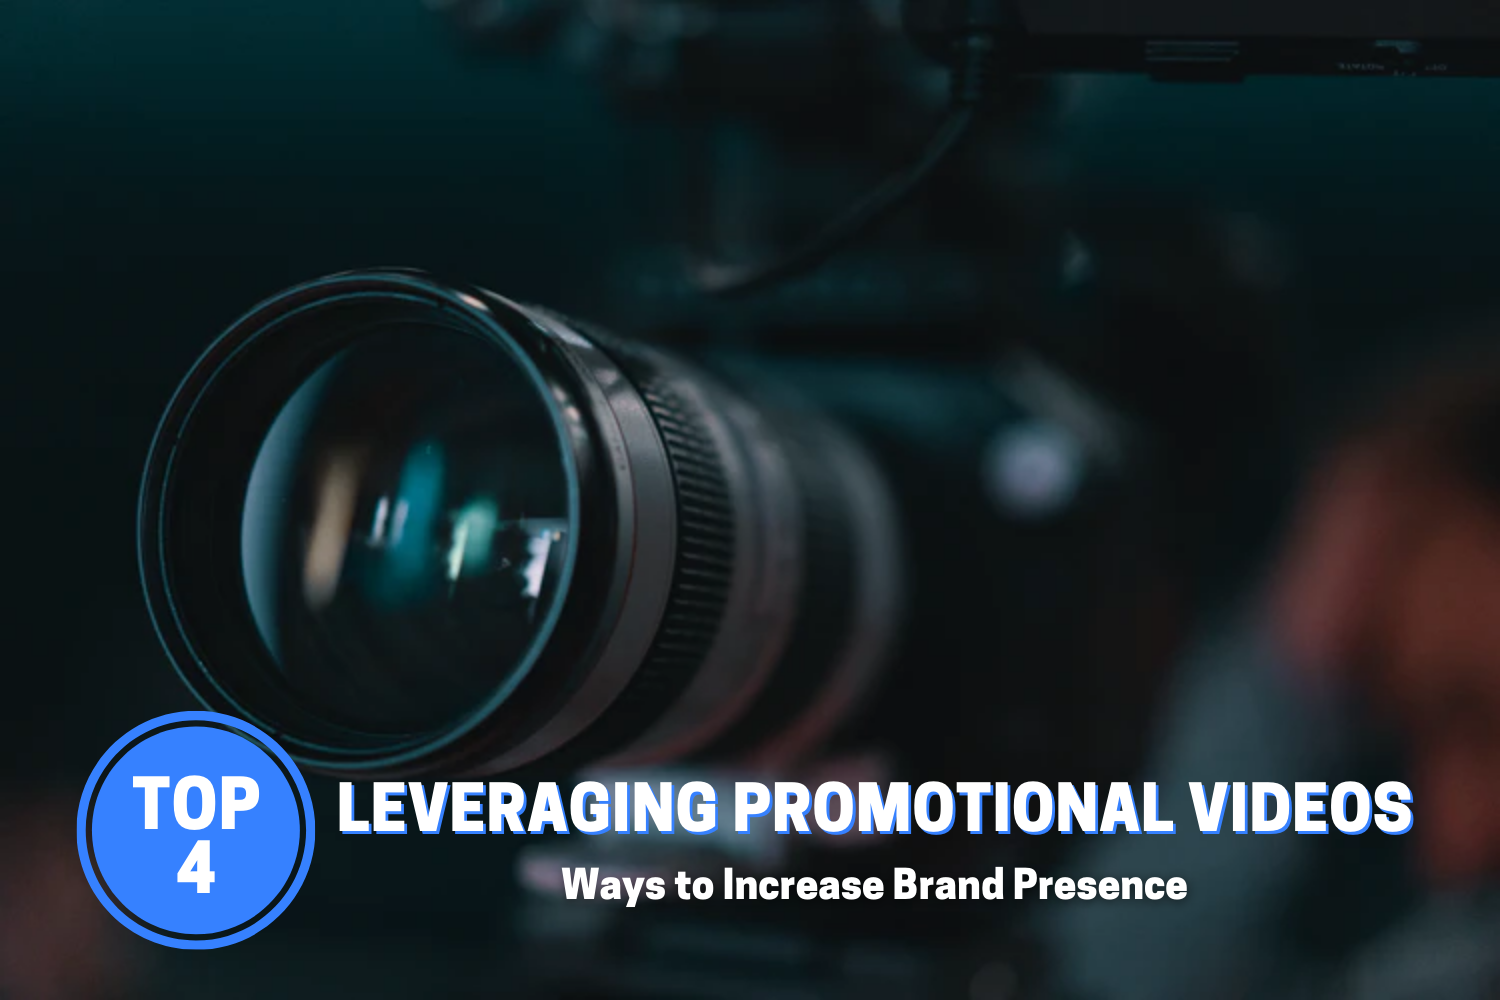 4 Genius Ways to Increase Brand Presence by Leveraging Promotional Videos